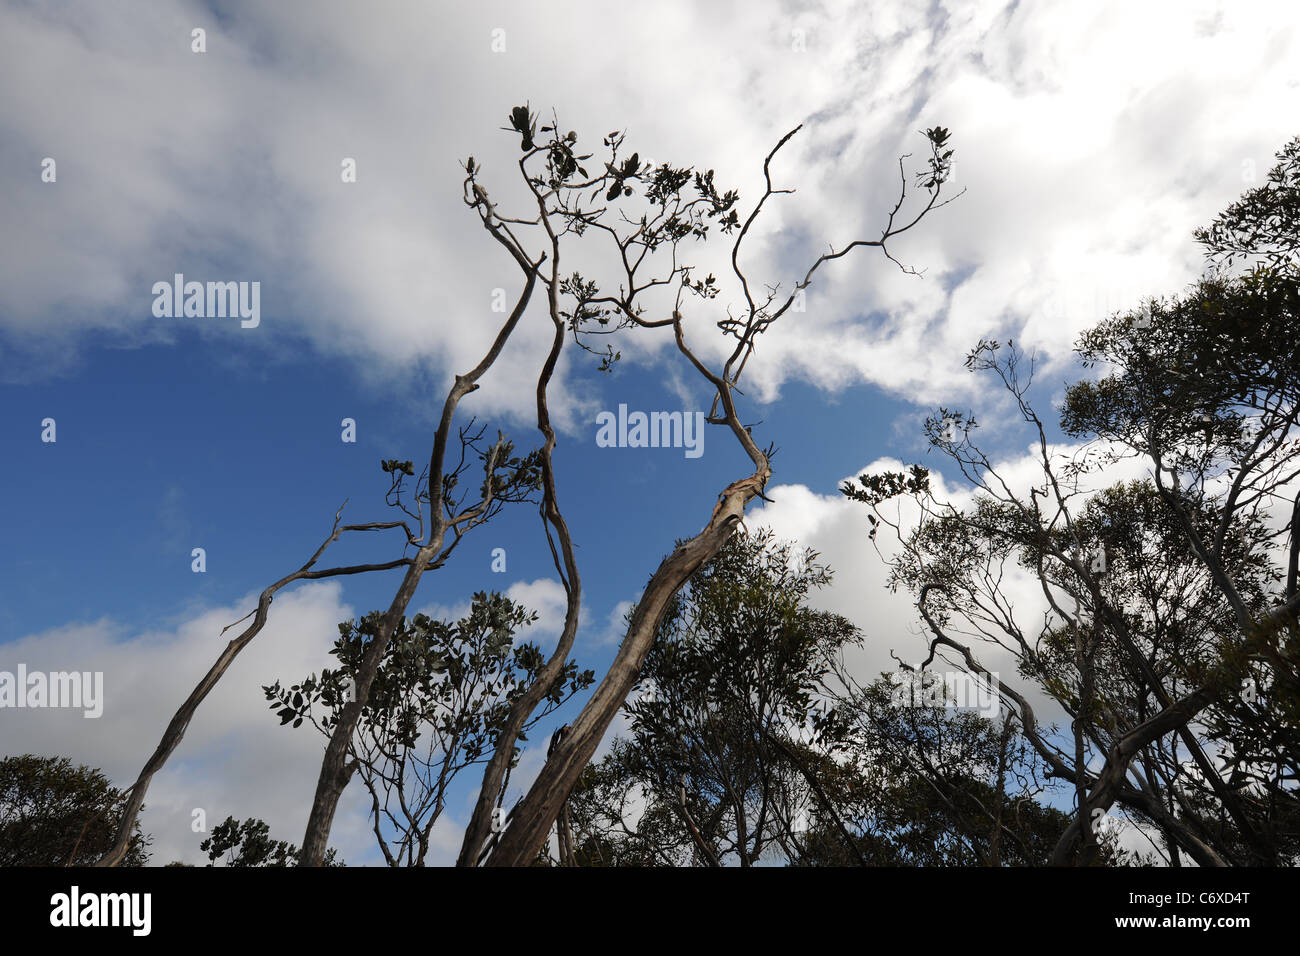 typical Australian 'bush', Shire of Esperance, Western Australia, Australia - Stock Image